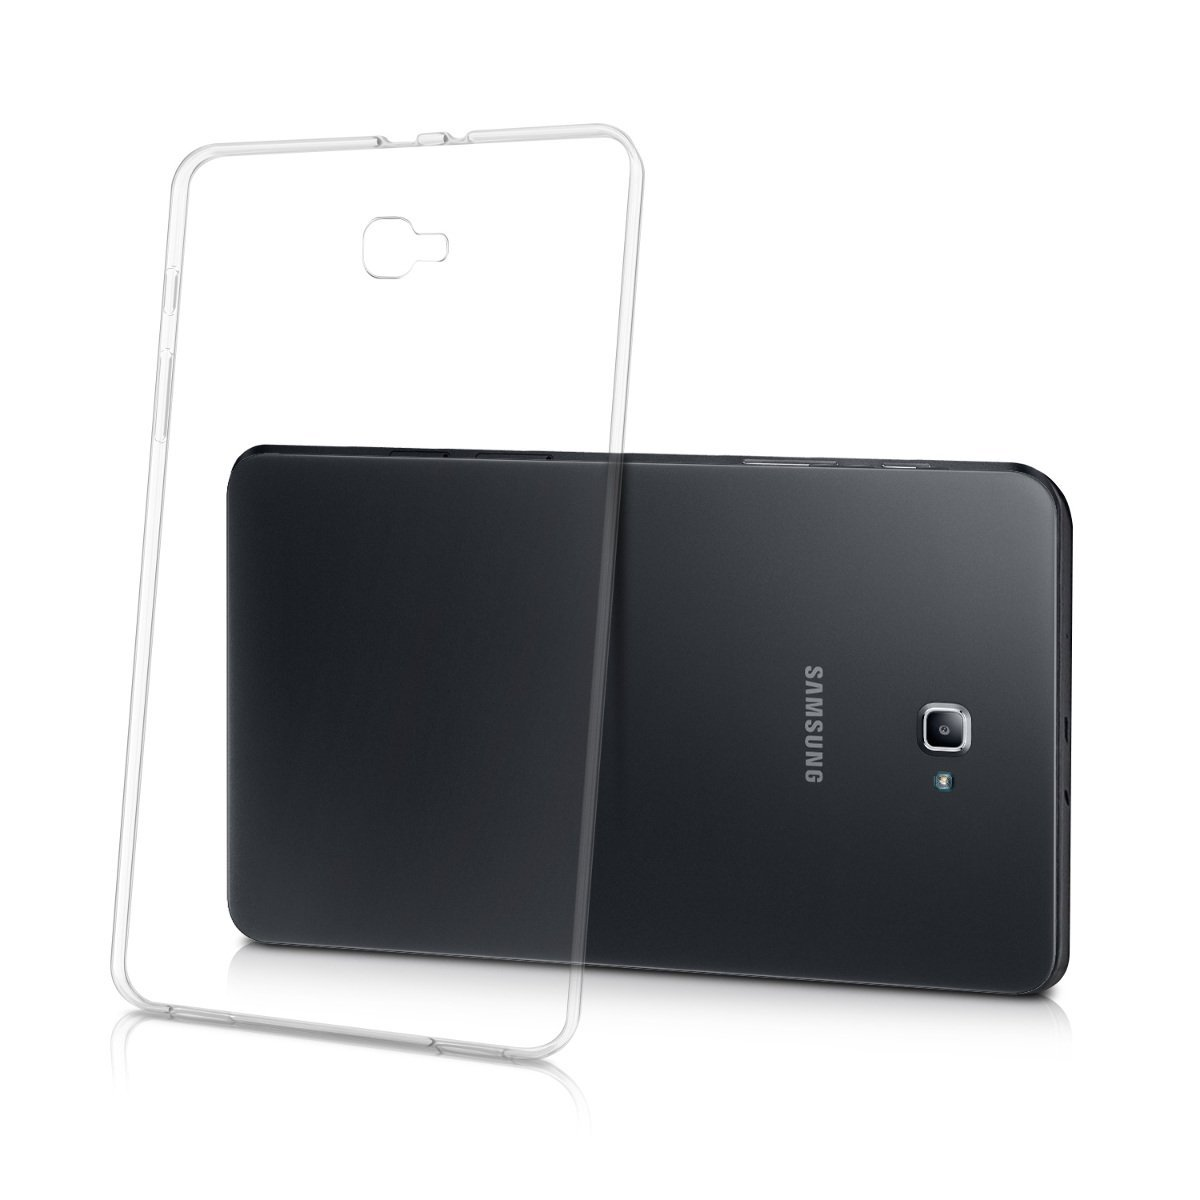 Crystal Case Soft Cover for Samsung Galaxy Tab A A6 10.1 2016 Case TPU Silicone Cover T580 T585 SM-T580 T585 Transparent Case x line soft silicone rubber tpu case back cover skin shell for for samsung galaxy tab a 8 0 inch t350 t351 t355 case